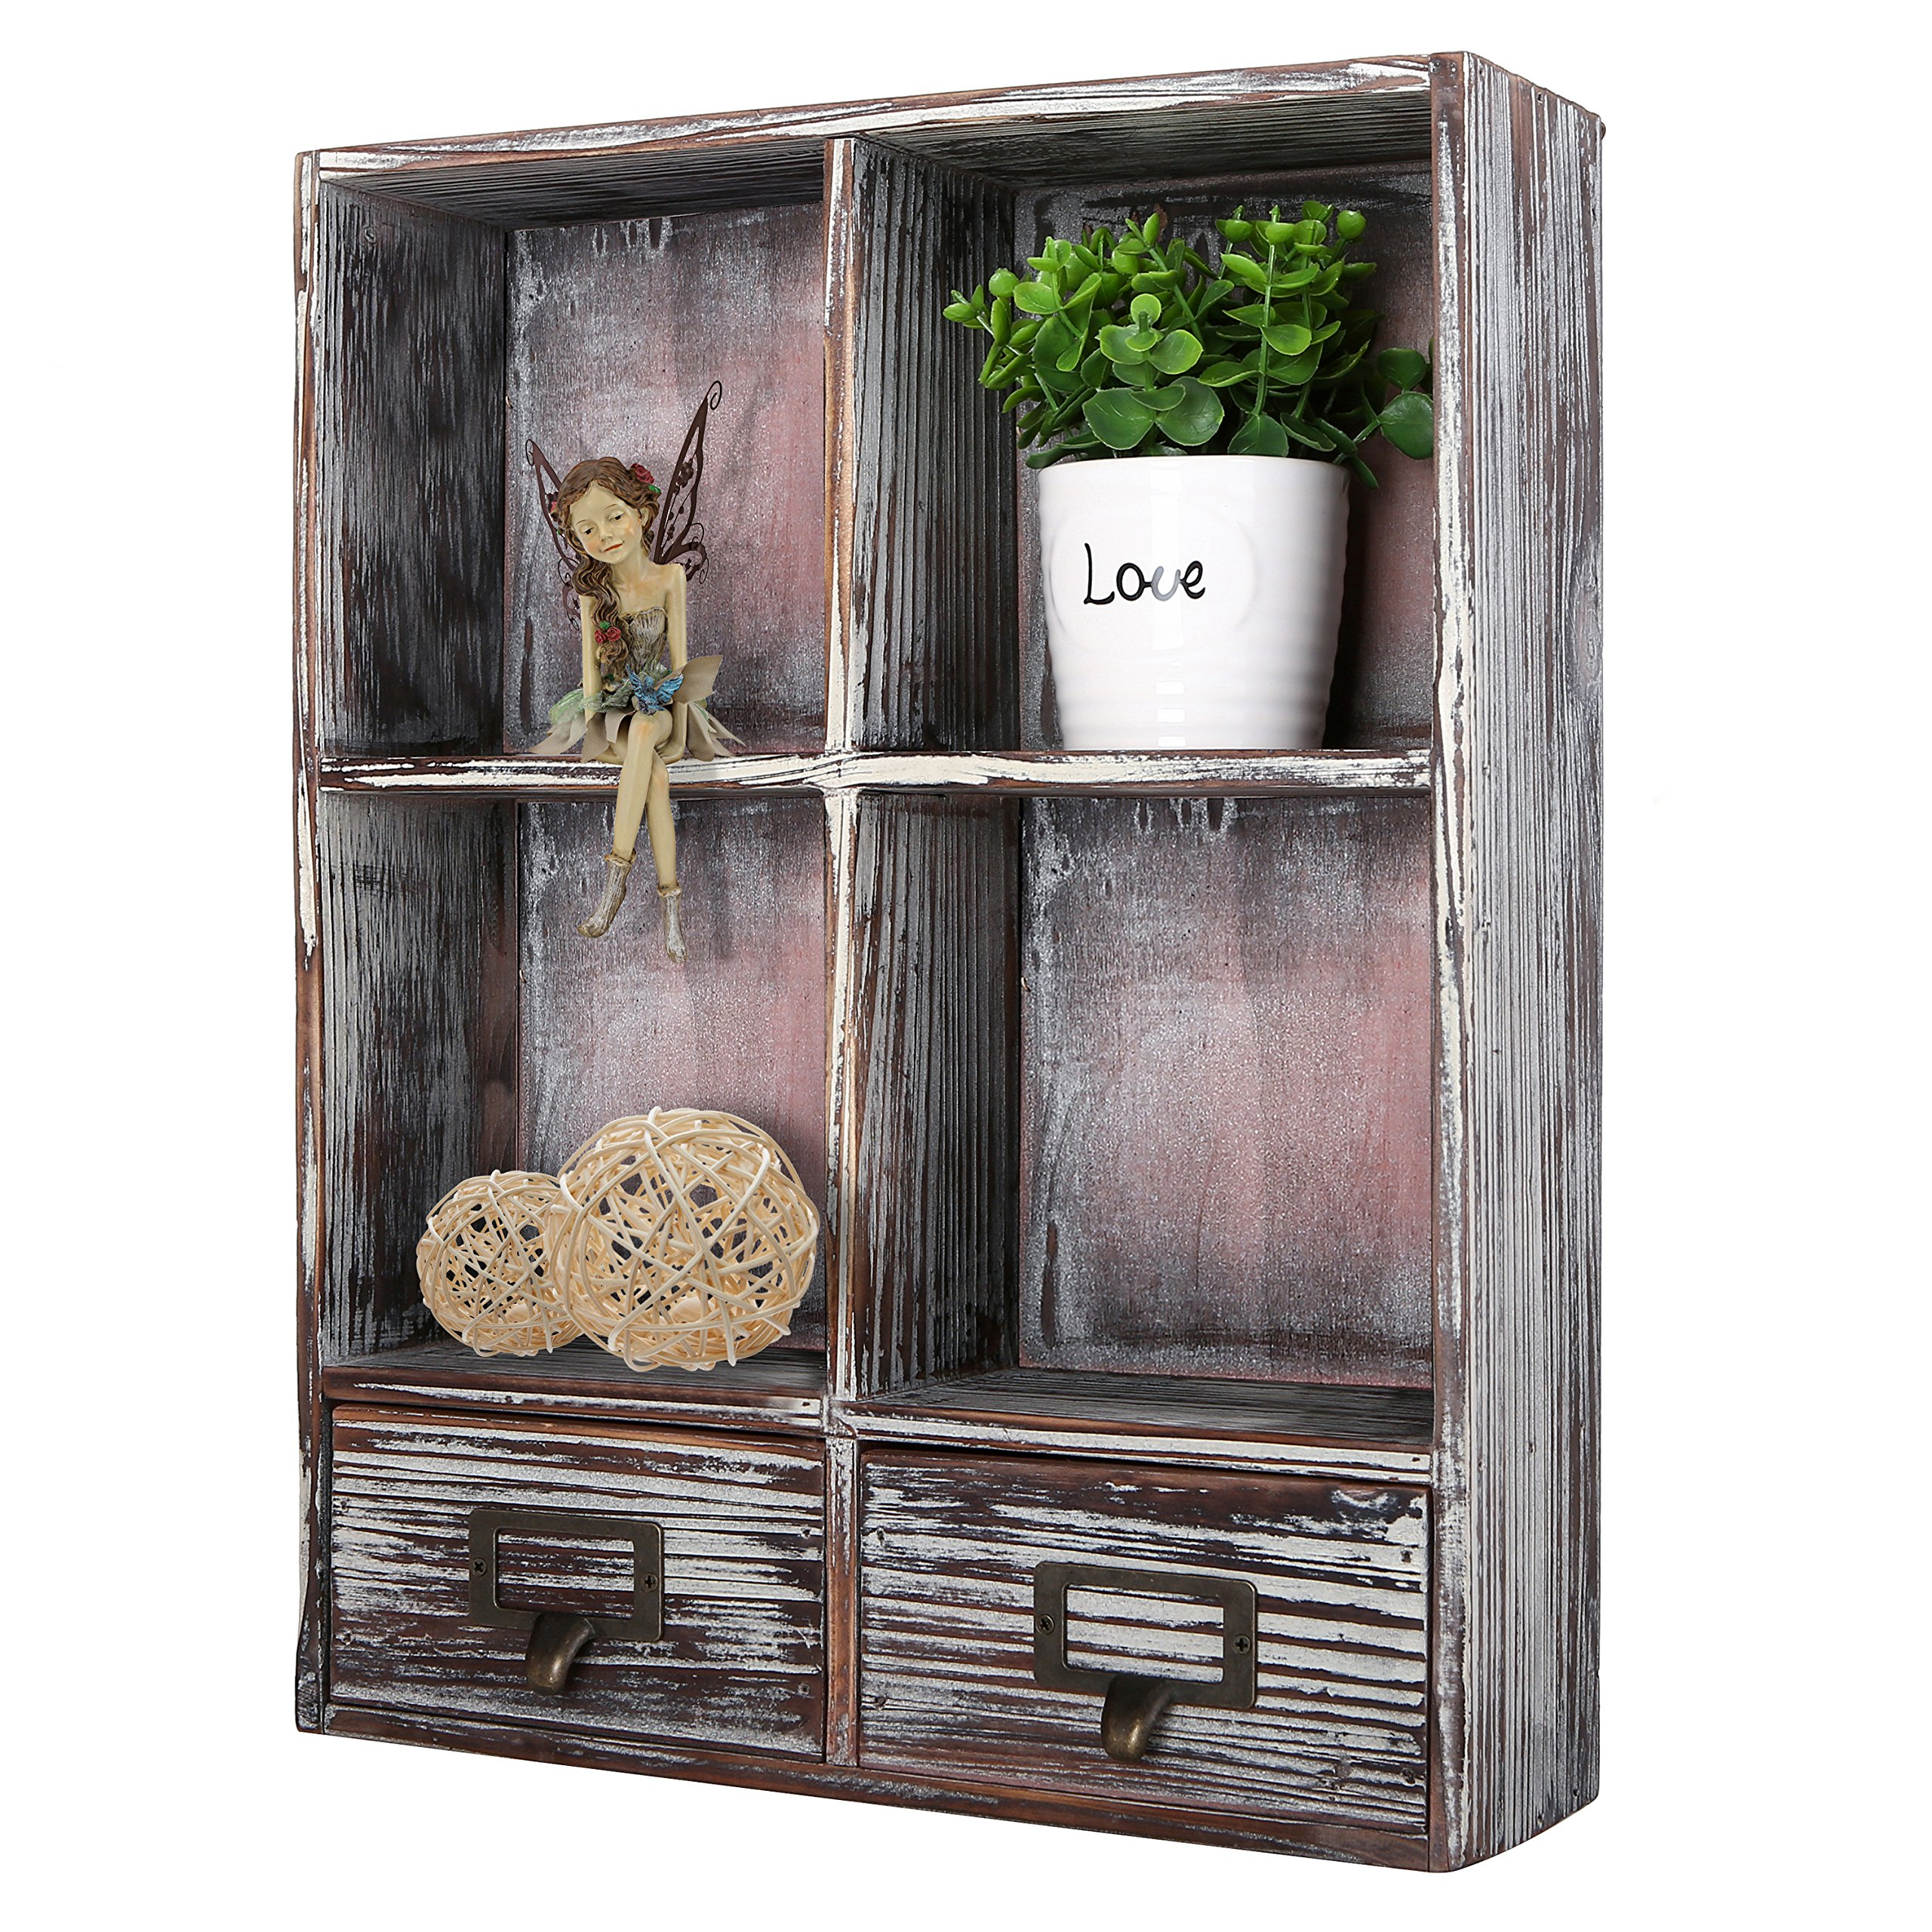 MyGift Rustic Torched Wood Wall Mounted Shadow Box with 4 Cubby Shelving and 2 Drawers with Label Holders